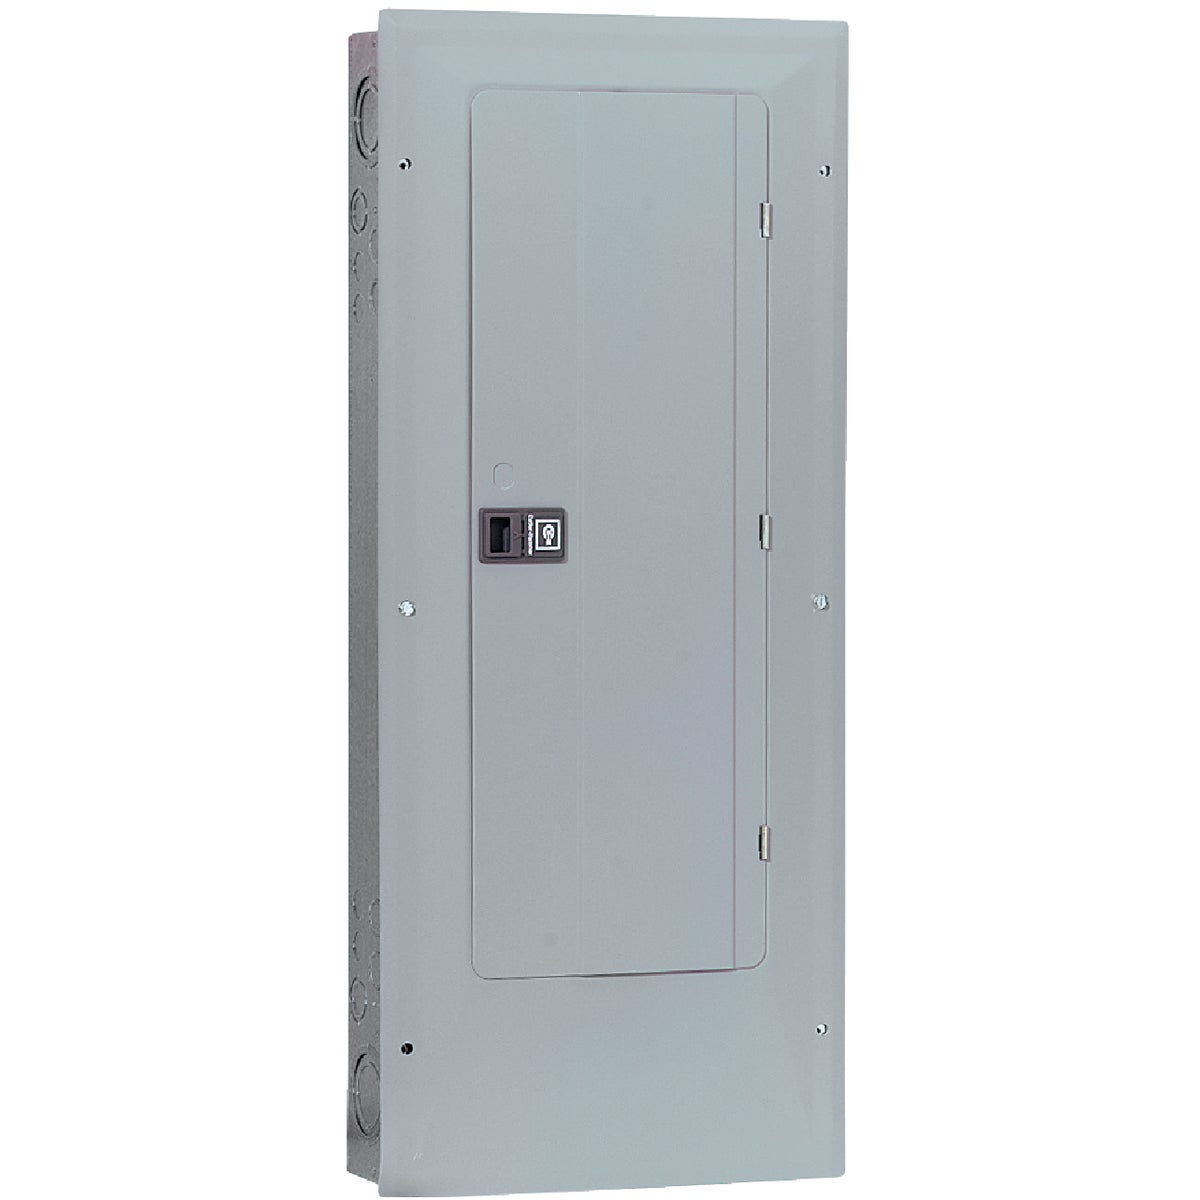 200A LOAD CENTER - BR3040B200V by Eaton Corporation